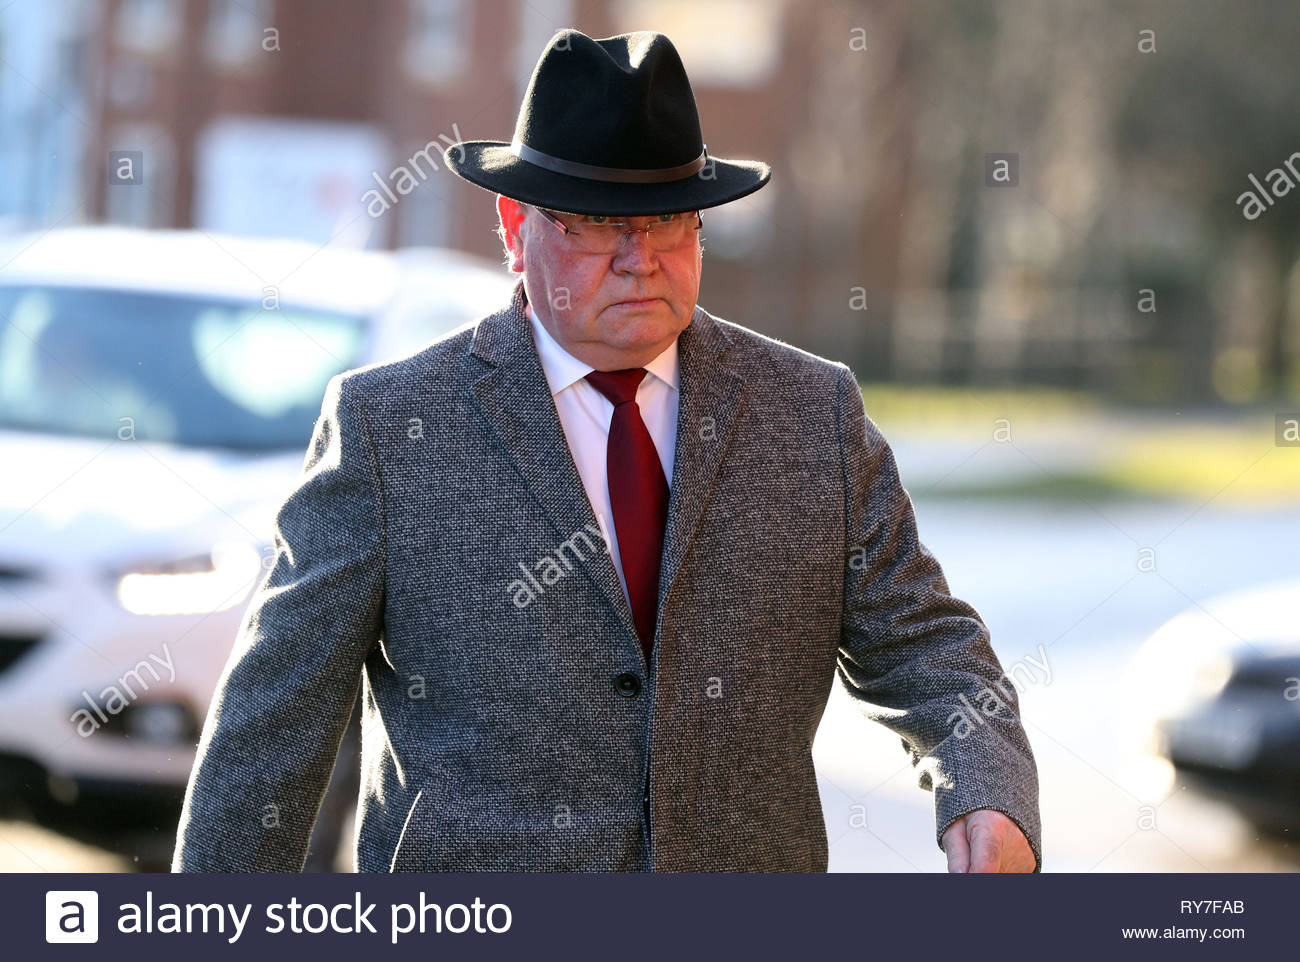 File photo dated 19/12/17 of Alan Bramley, 69, who worked at Medomsley Detention Centre in Consett, County Durham, and who has been convicted at Teesside Crown Court of the historic physical abuse of teenage inmates in the 1970s and 1980s. - Stock Image